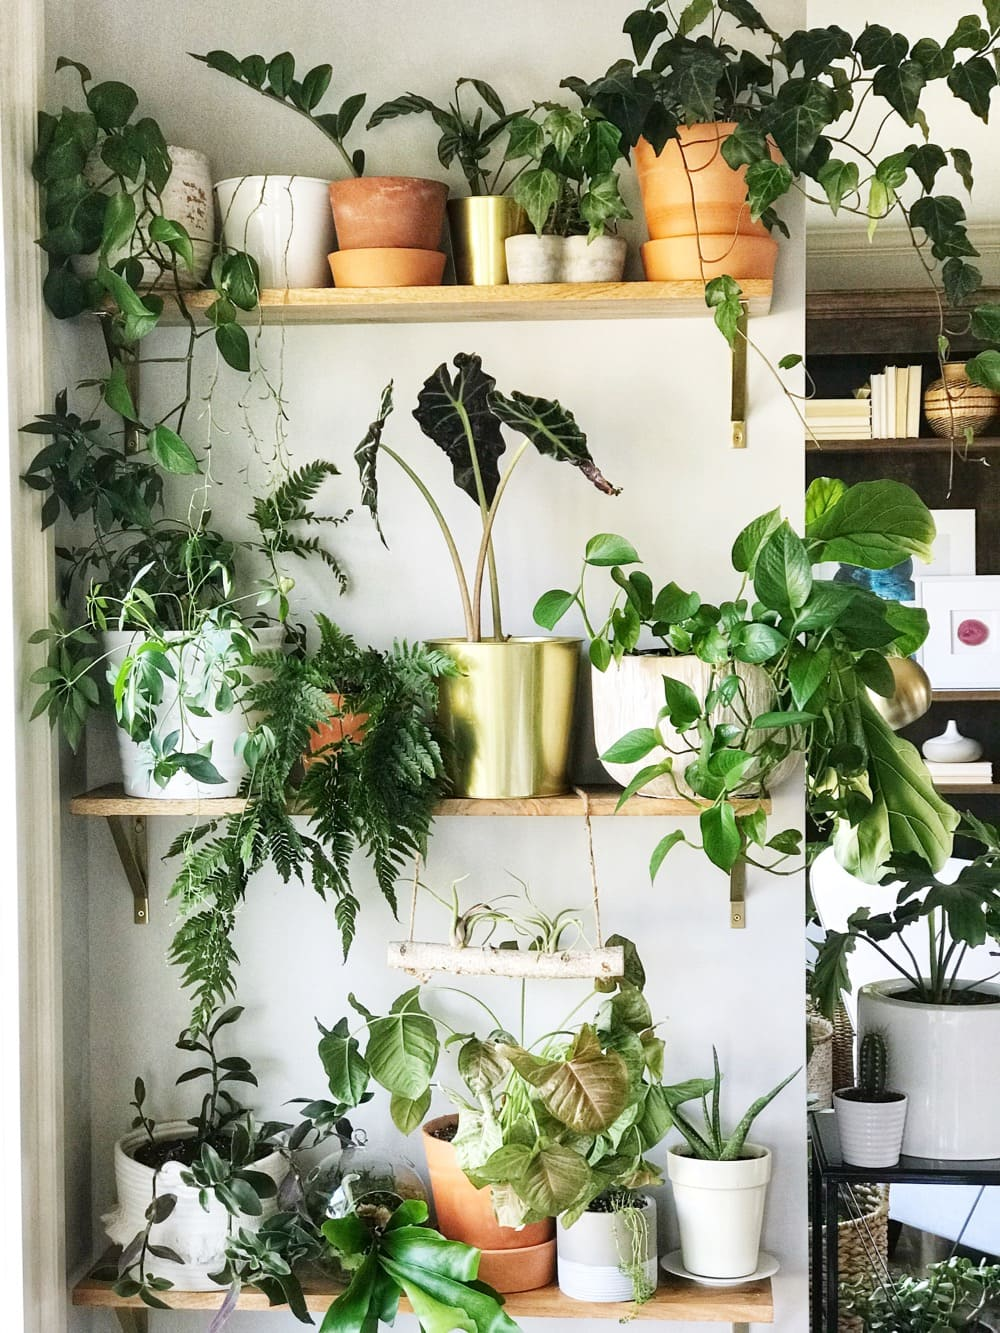 9 Care Tips for Houseplants in the Winter